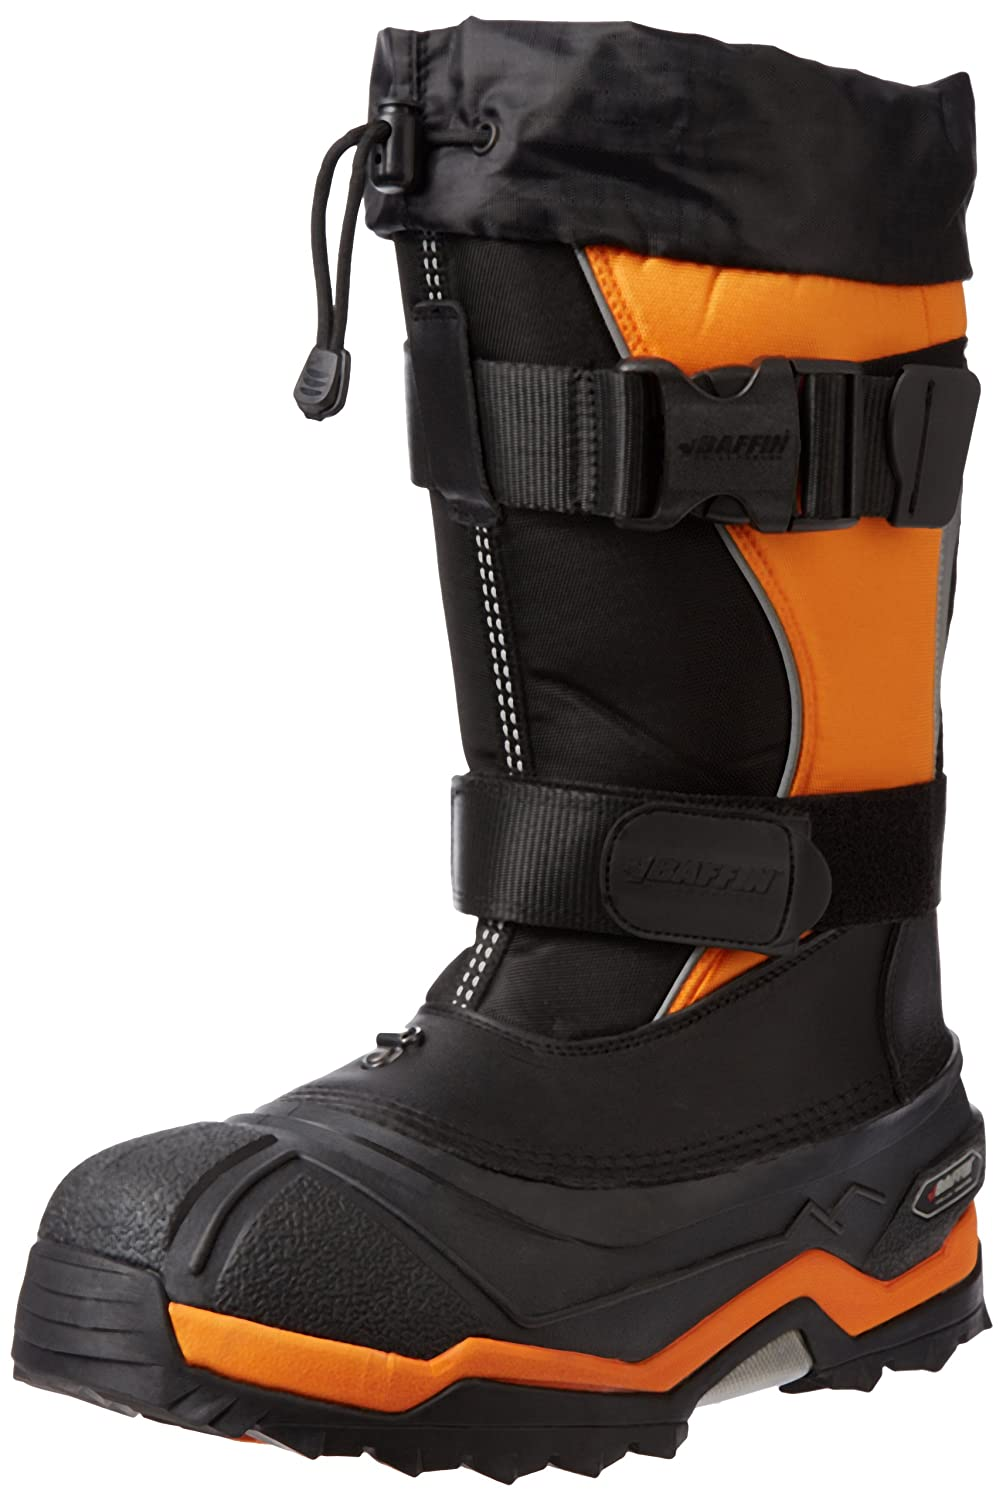 Image result for Baffin Men's Selkirk Snow Boot